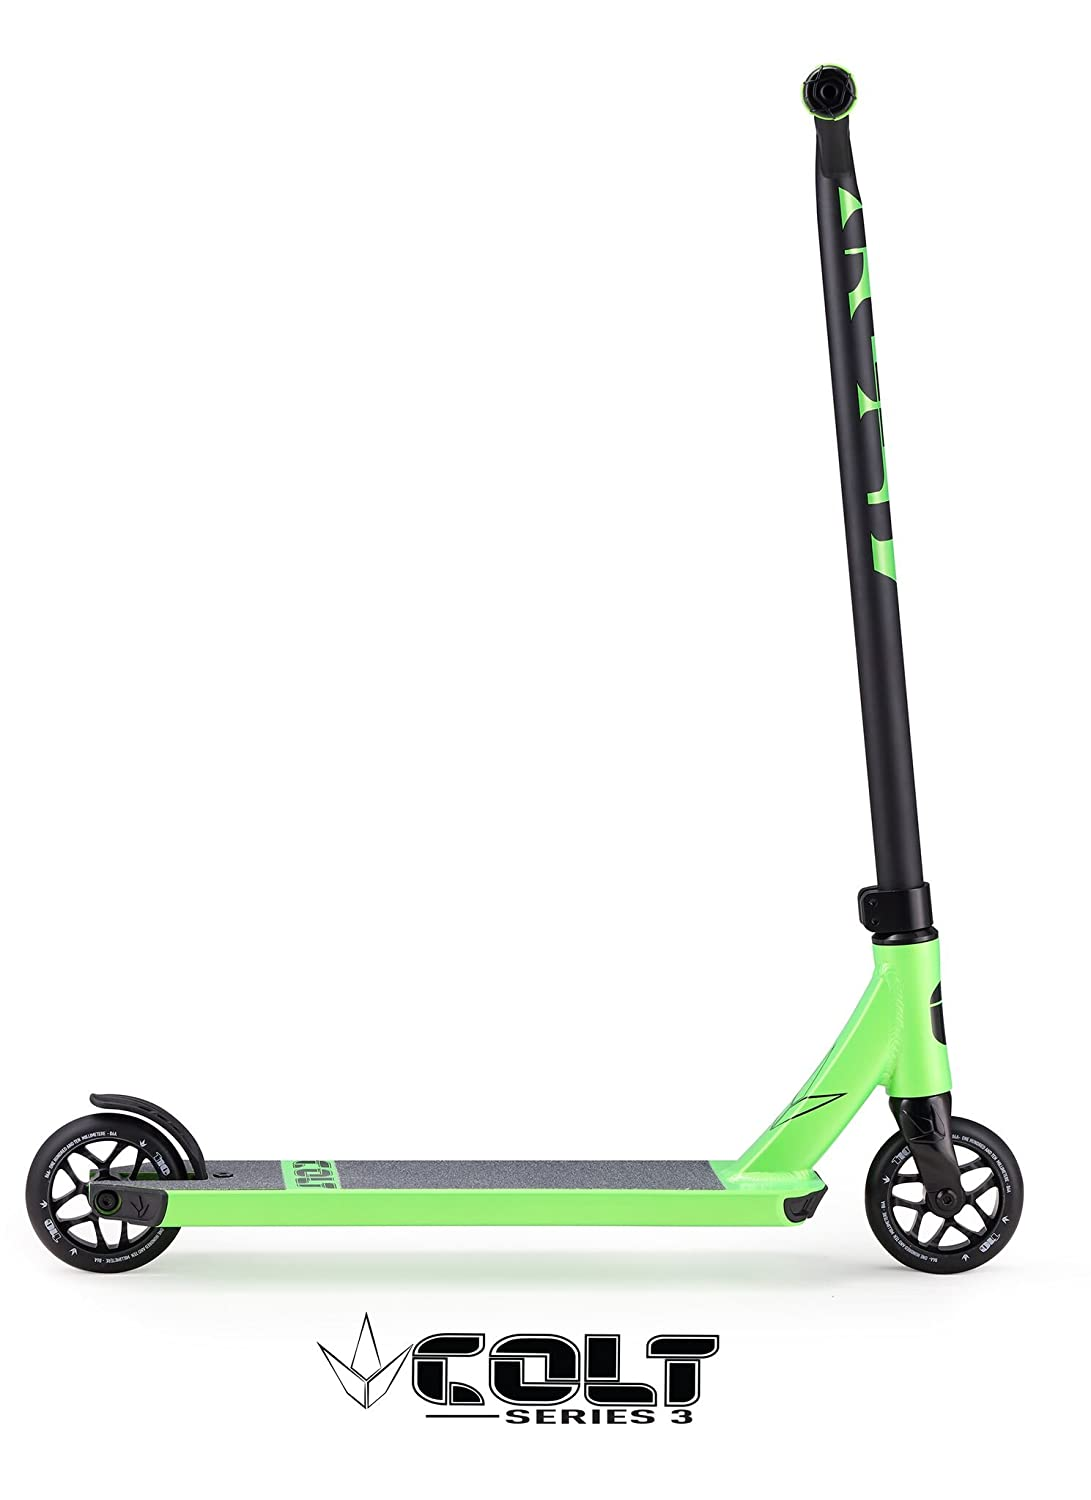 Envy Series 3 Colt Scooter Green